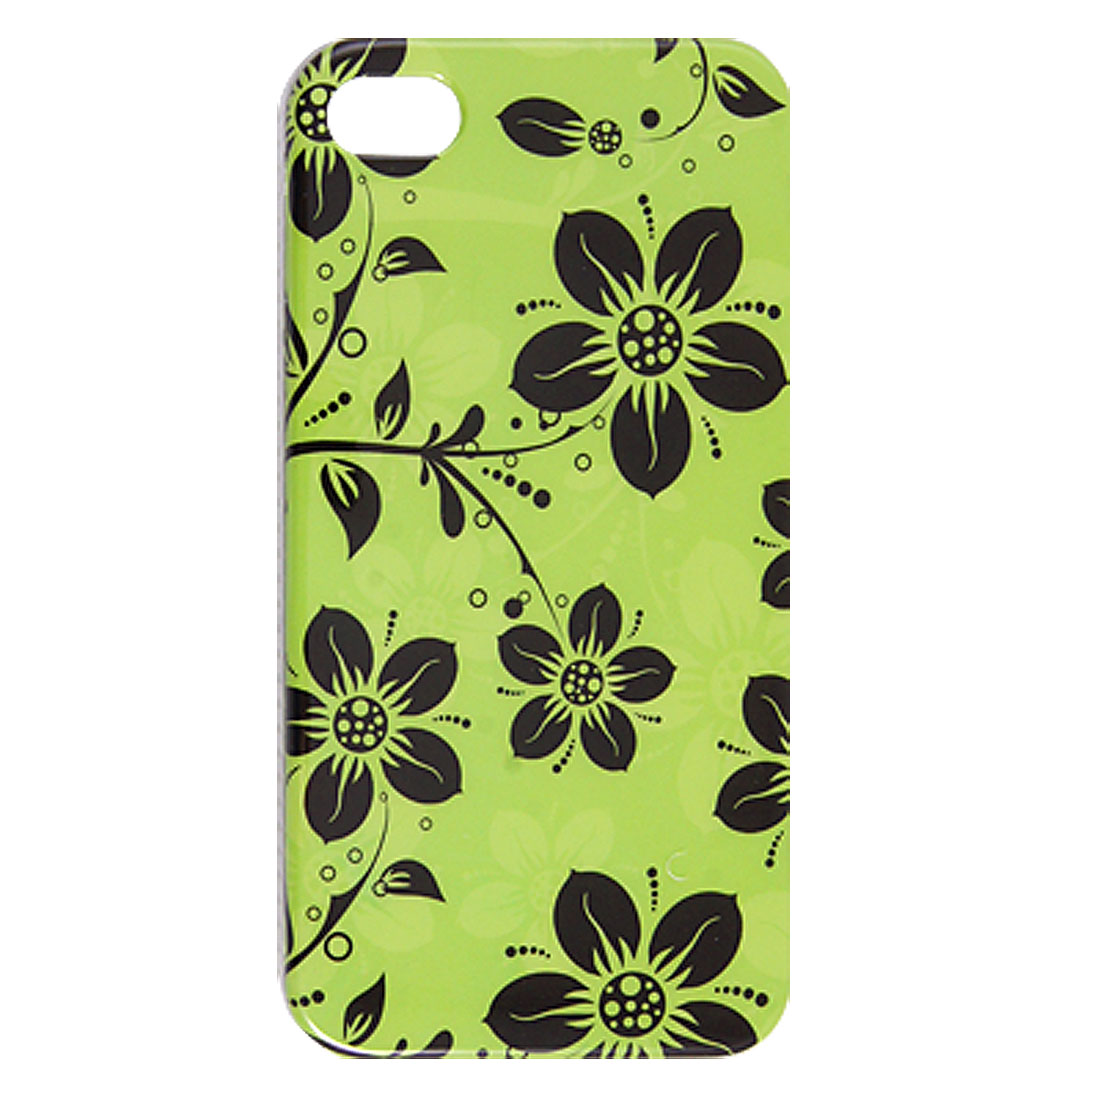 Black Flower Vector Printed IMD Plastic Back Shell Green for iPhone 4 4G 4S